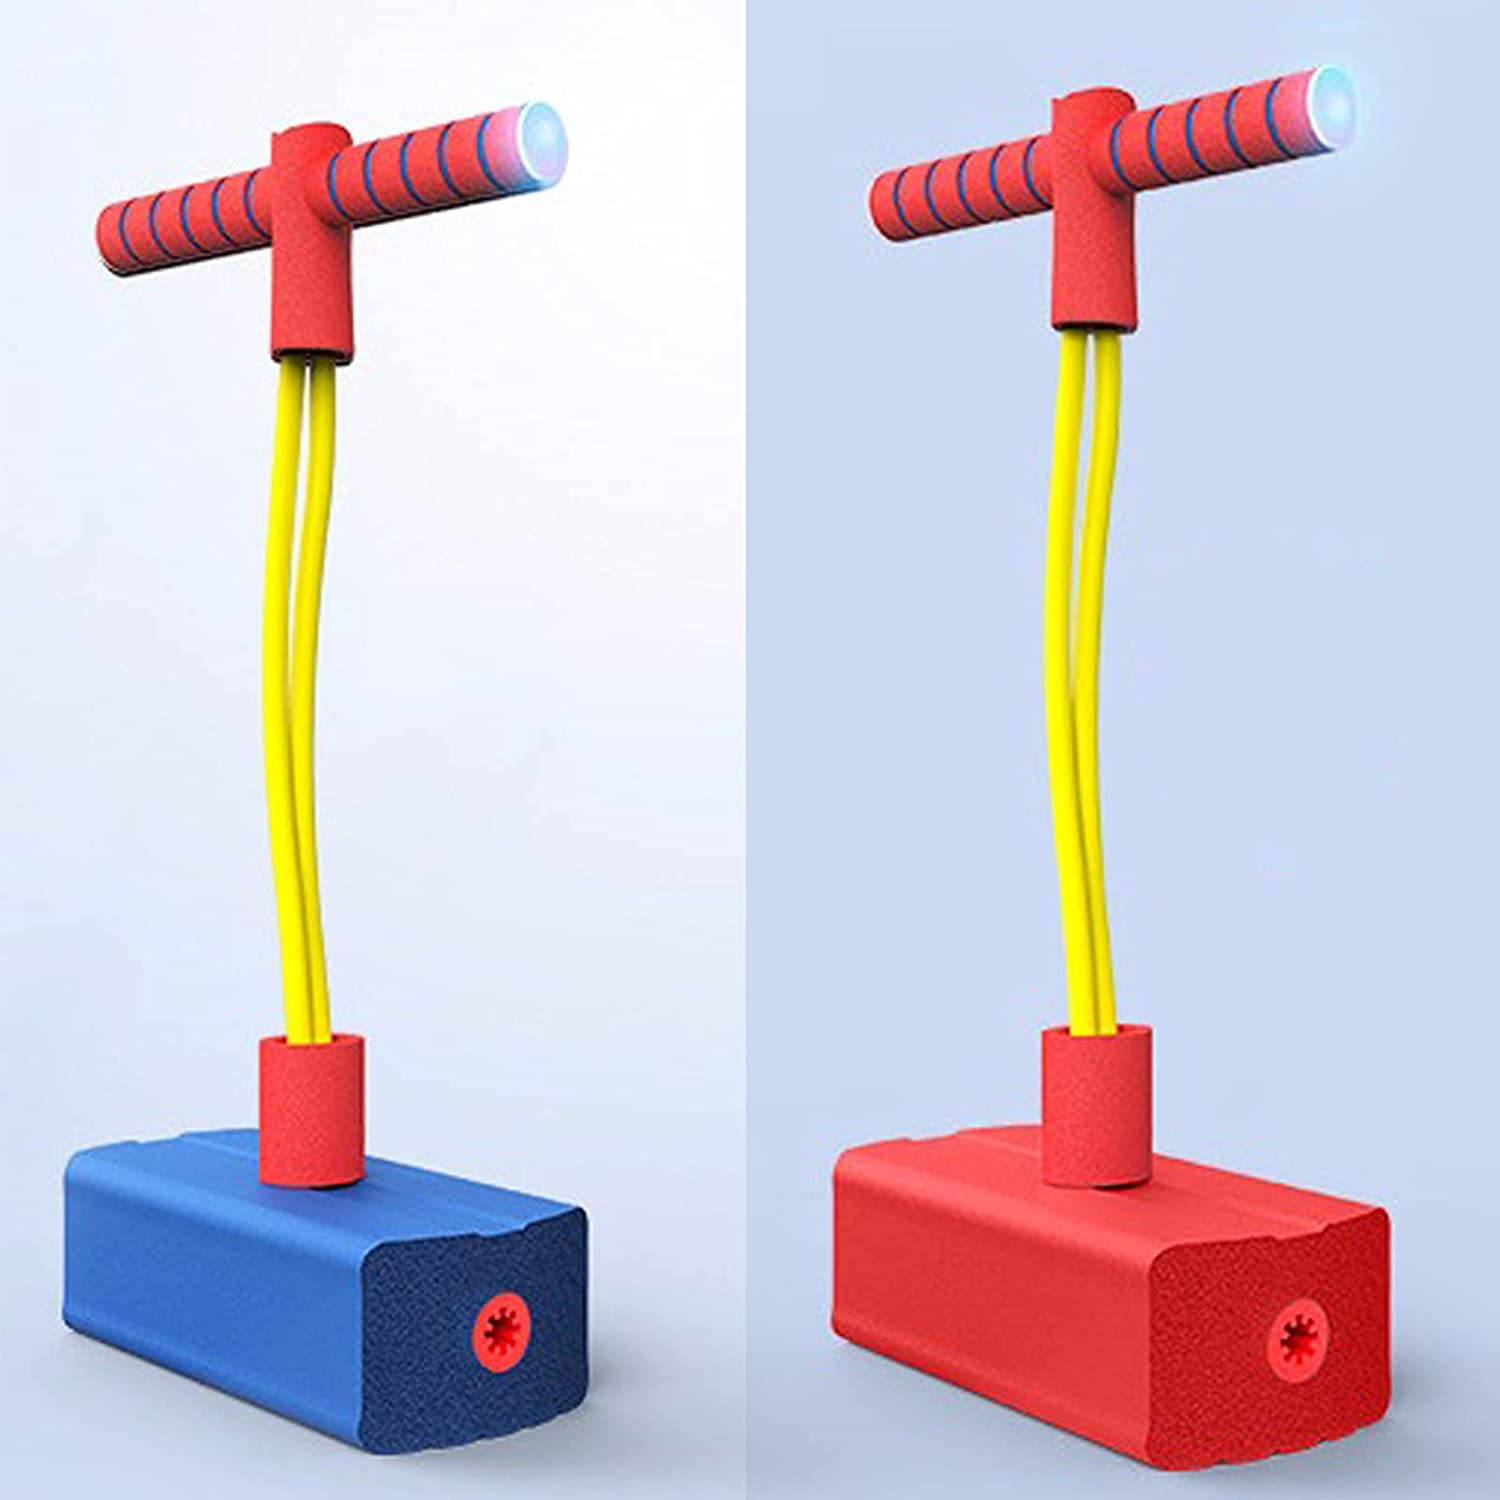 IIIL Pogo Stick Toys for 3-12 Year Boys Girls Old Jum Foam Super Colorado Springs Mall popular specialty store